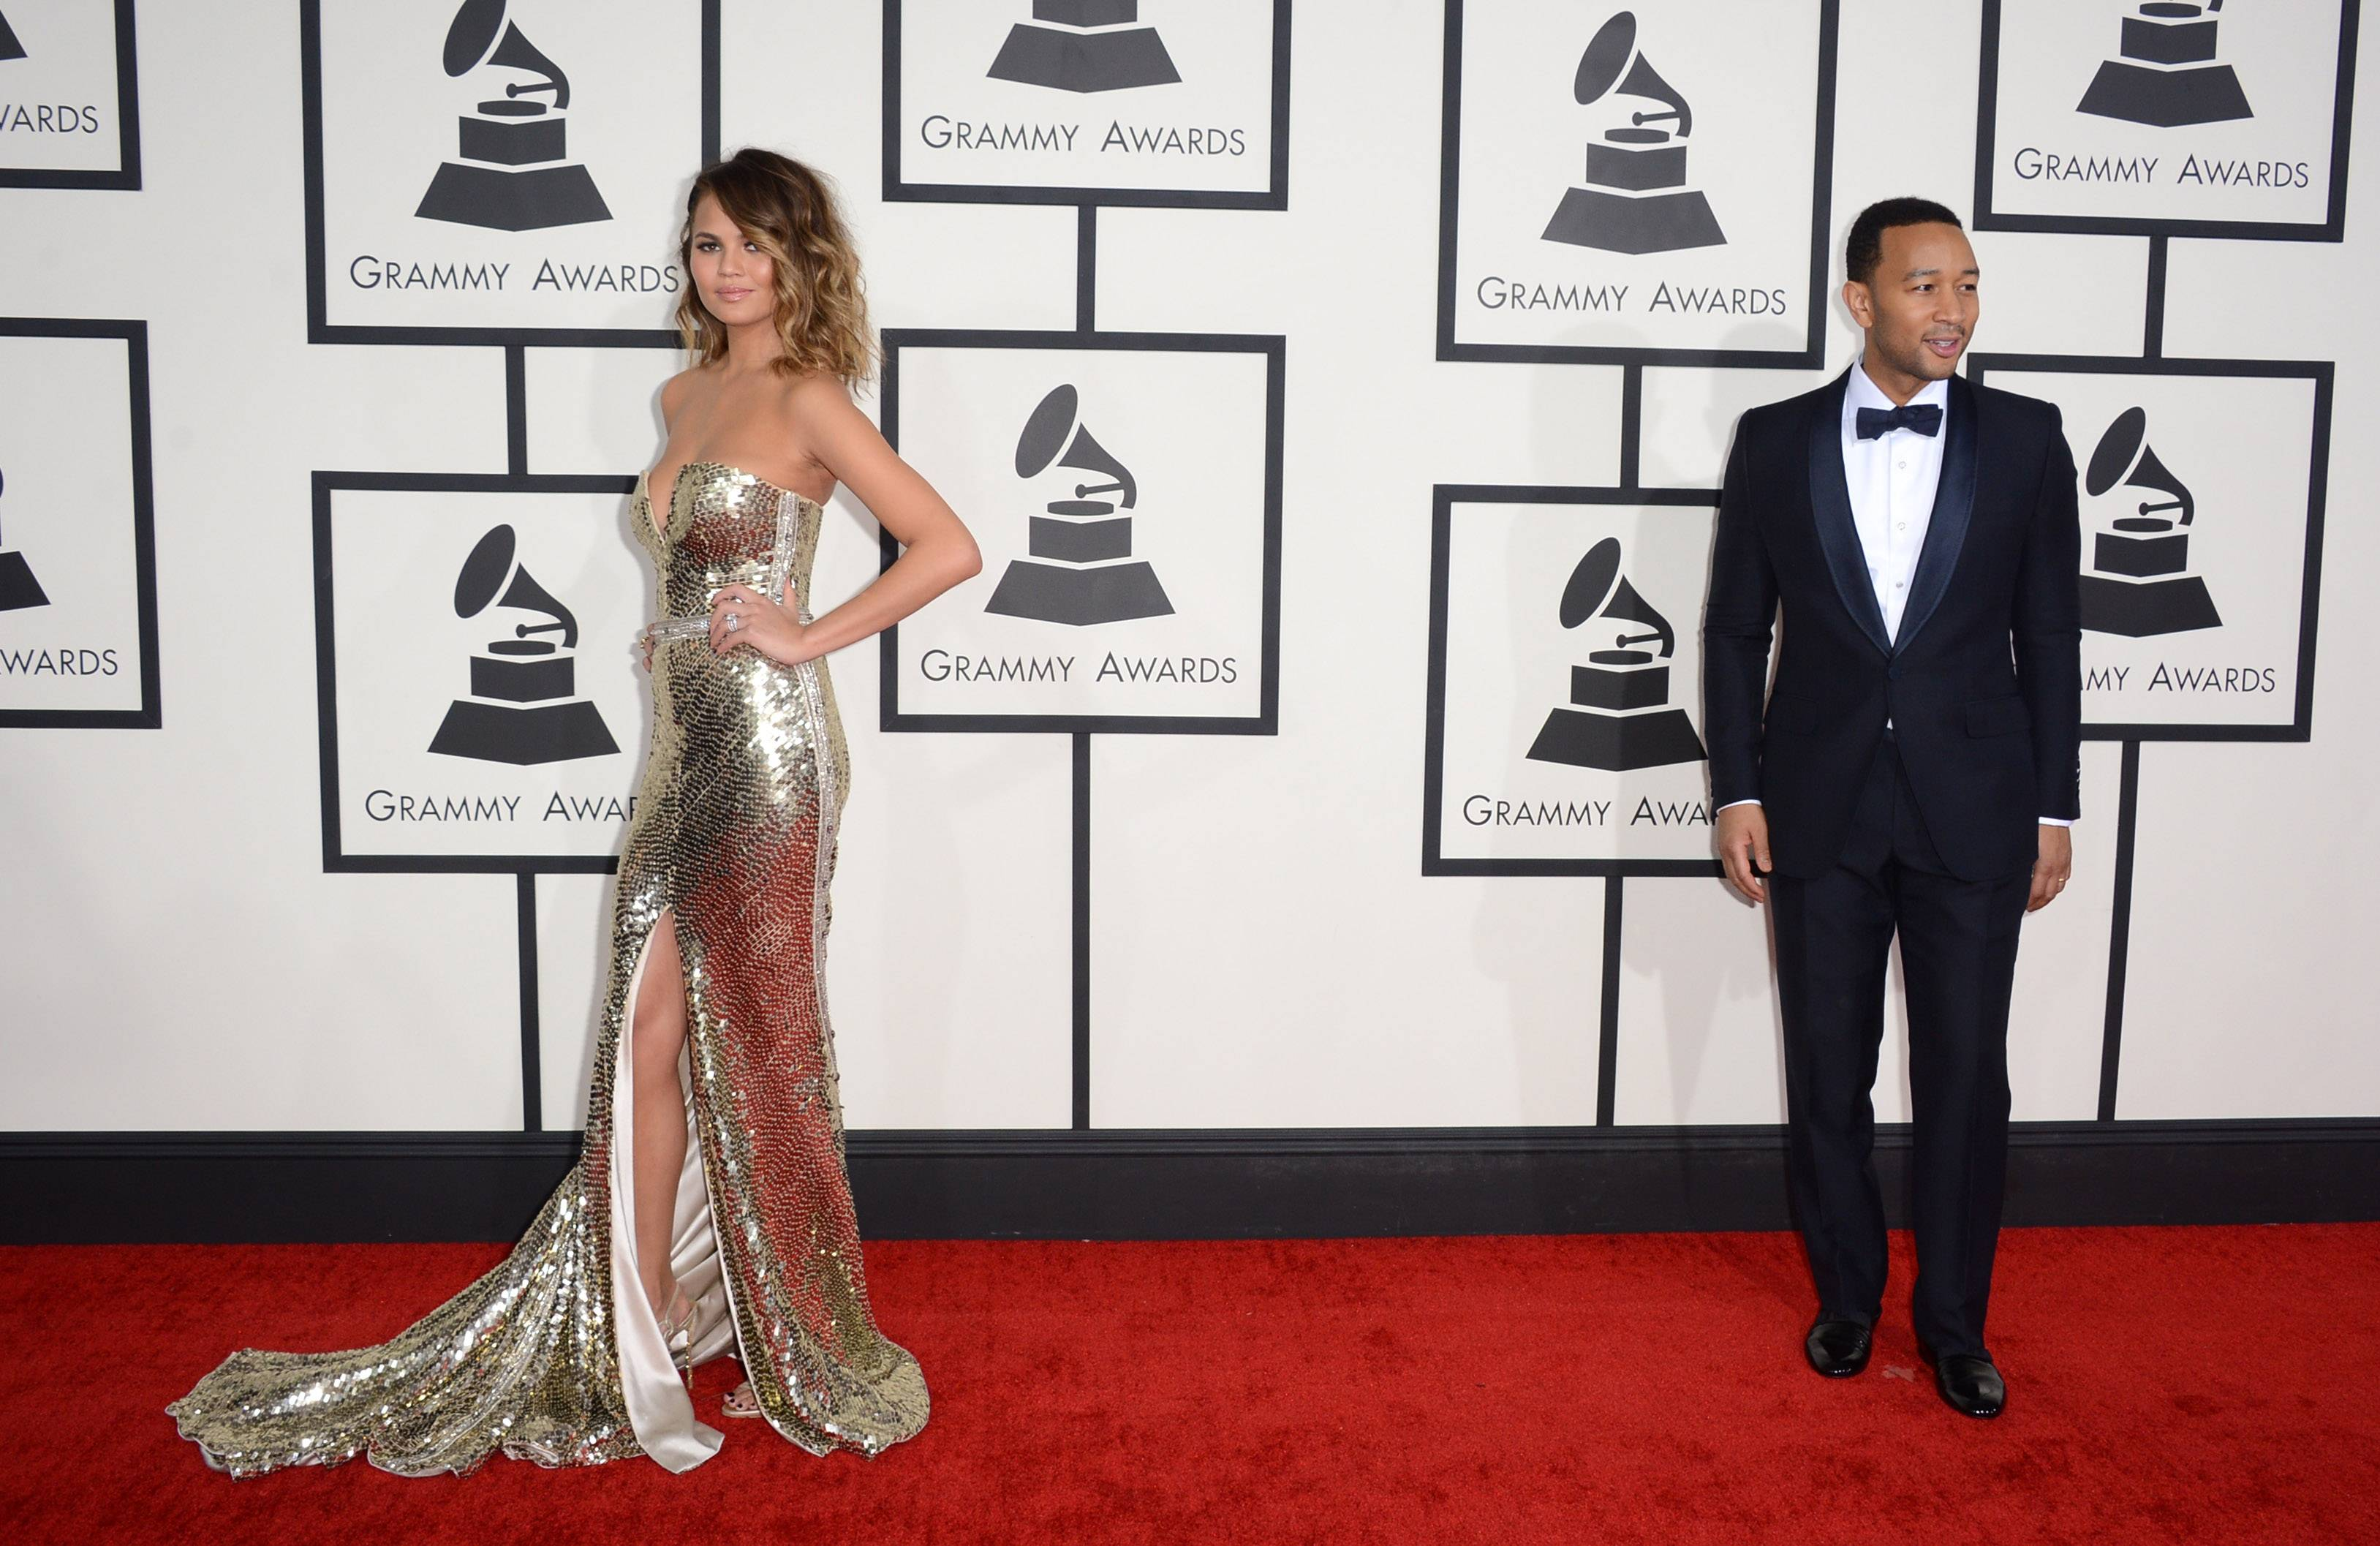 Christine Teigen, left, and John Legend arrive at the 56th annual Grammy Awards.